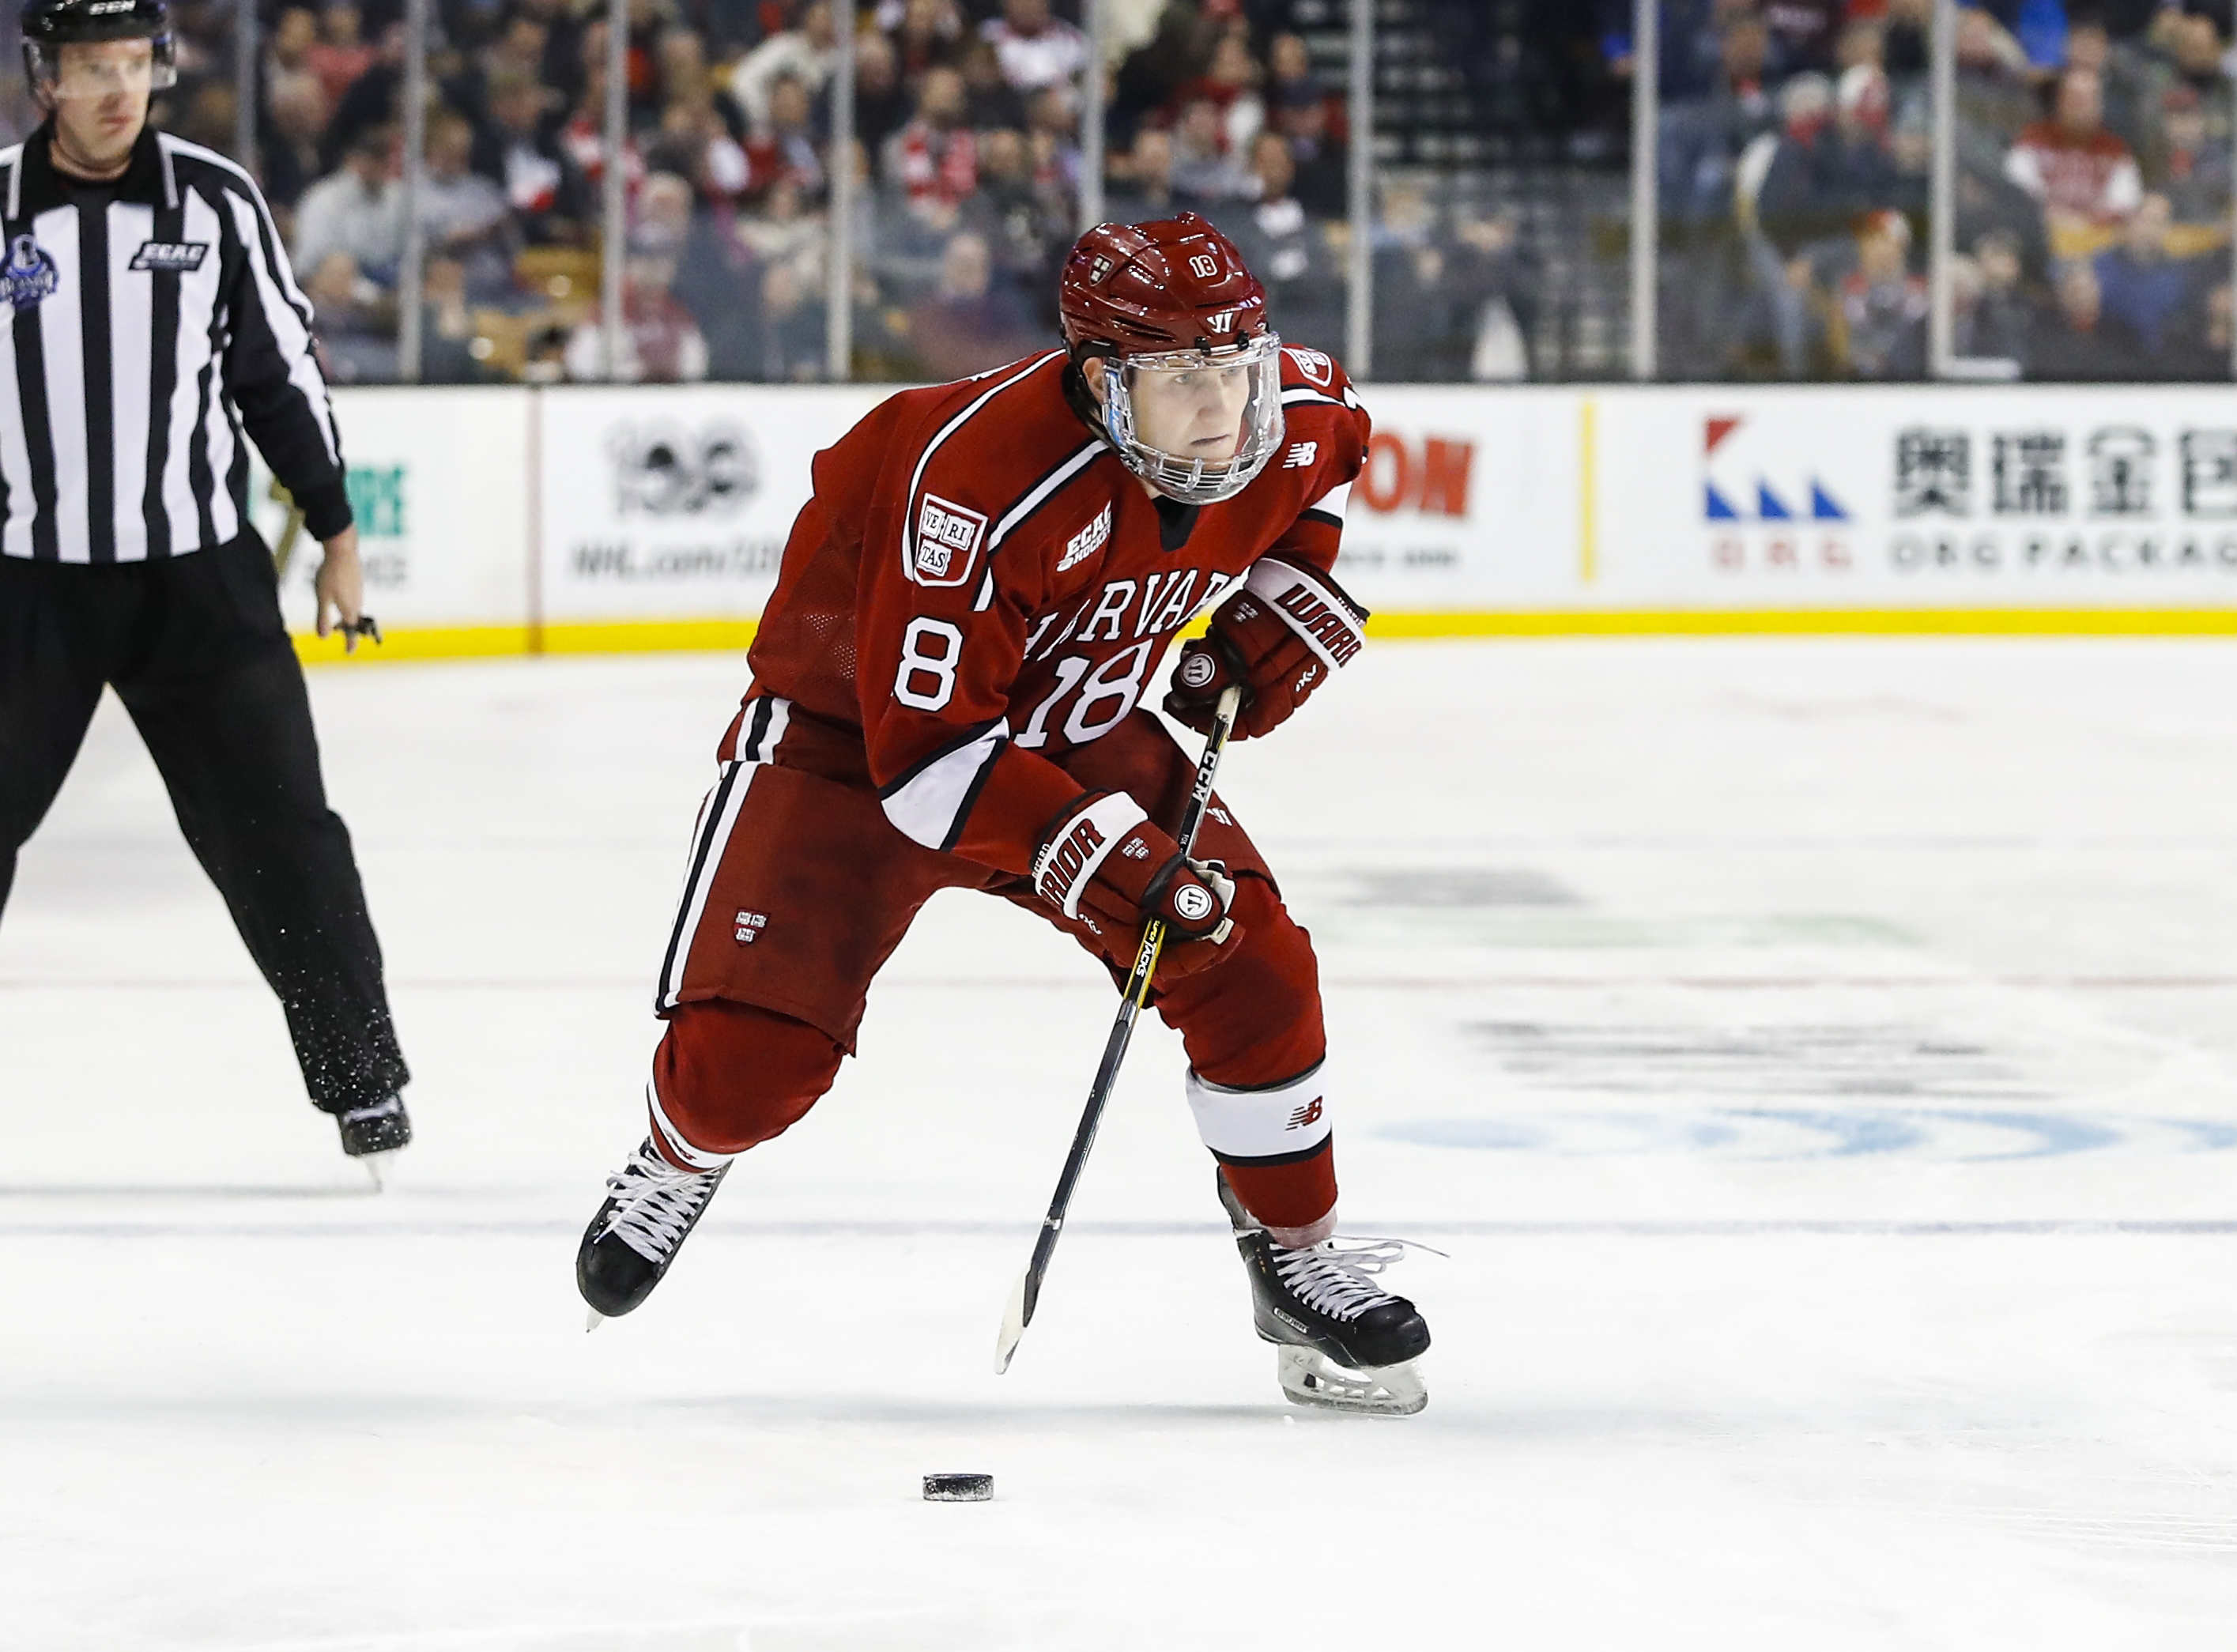 NCAA: Pace Keys Harvard's First Beanpot Title Since 1993